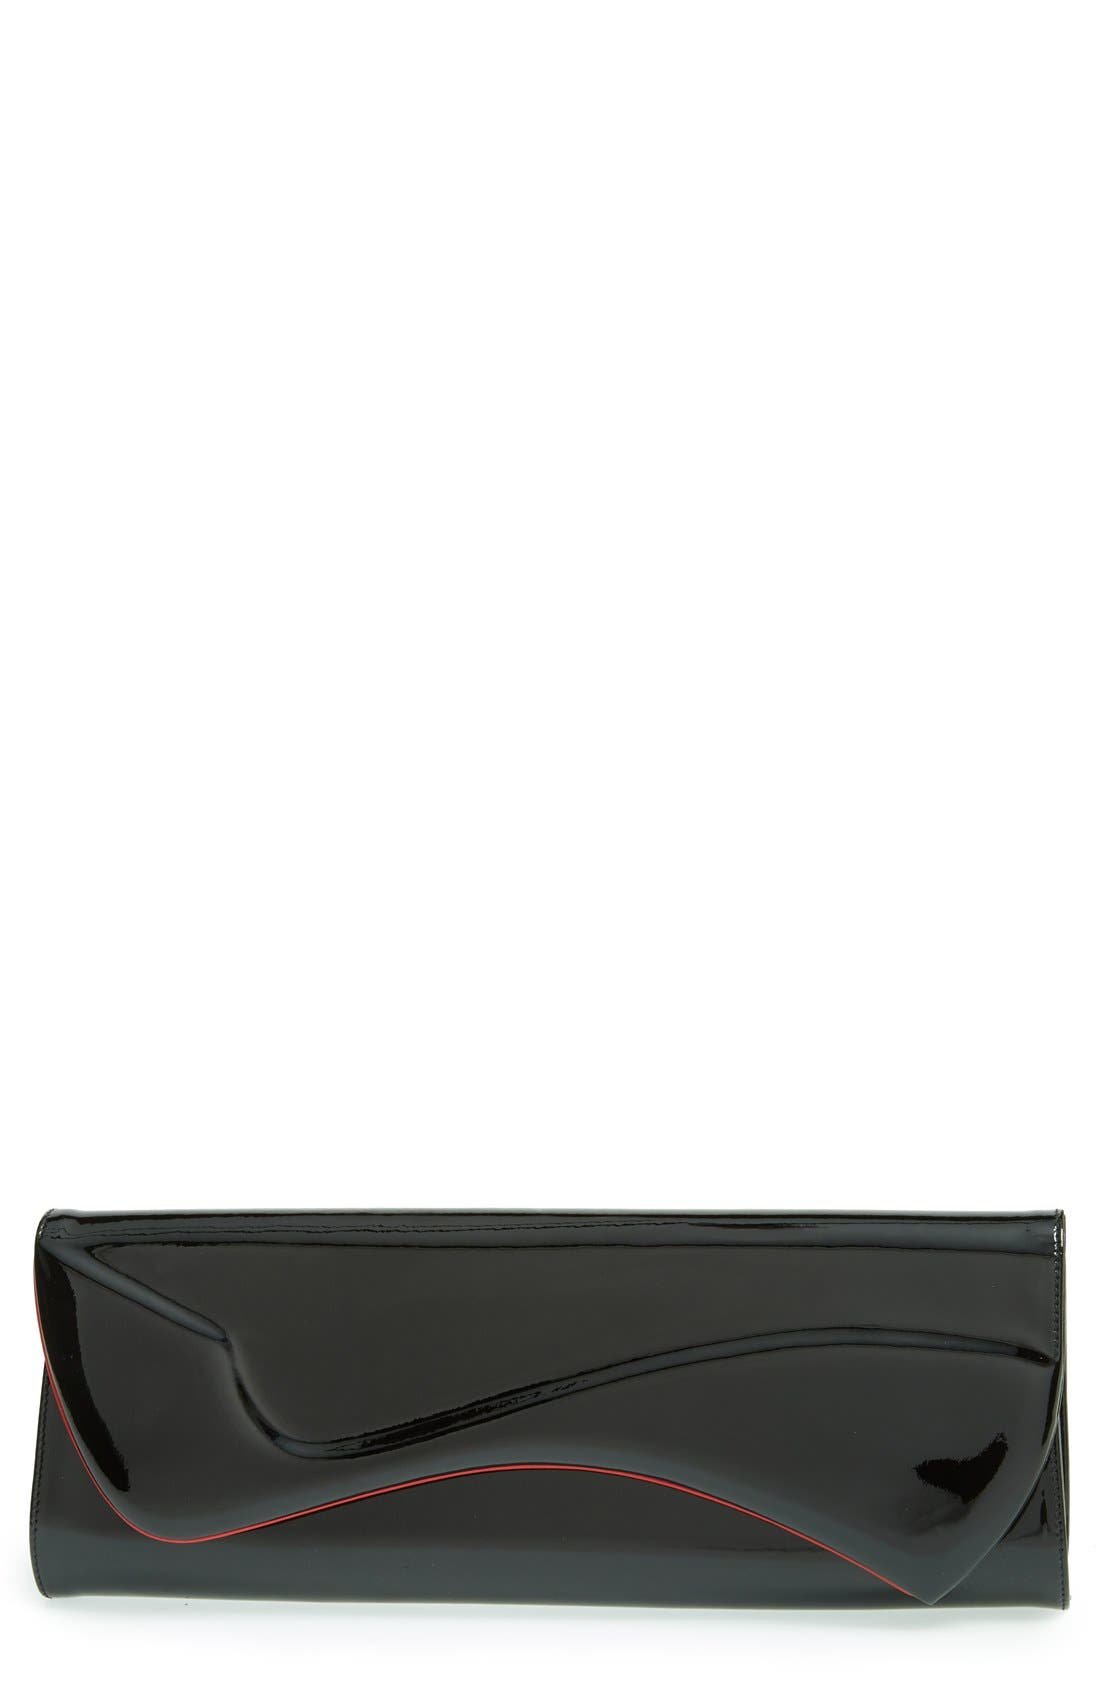 Alternate Image 1 Selected - Christian Louboutin 'Pigalle' Patent Leather Clutch